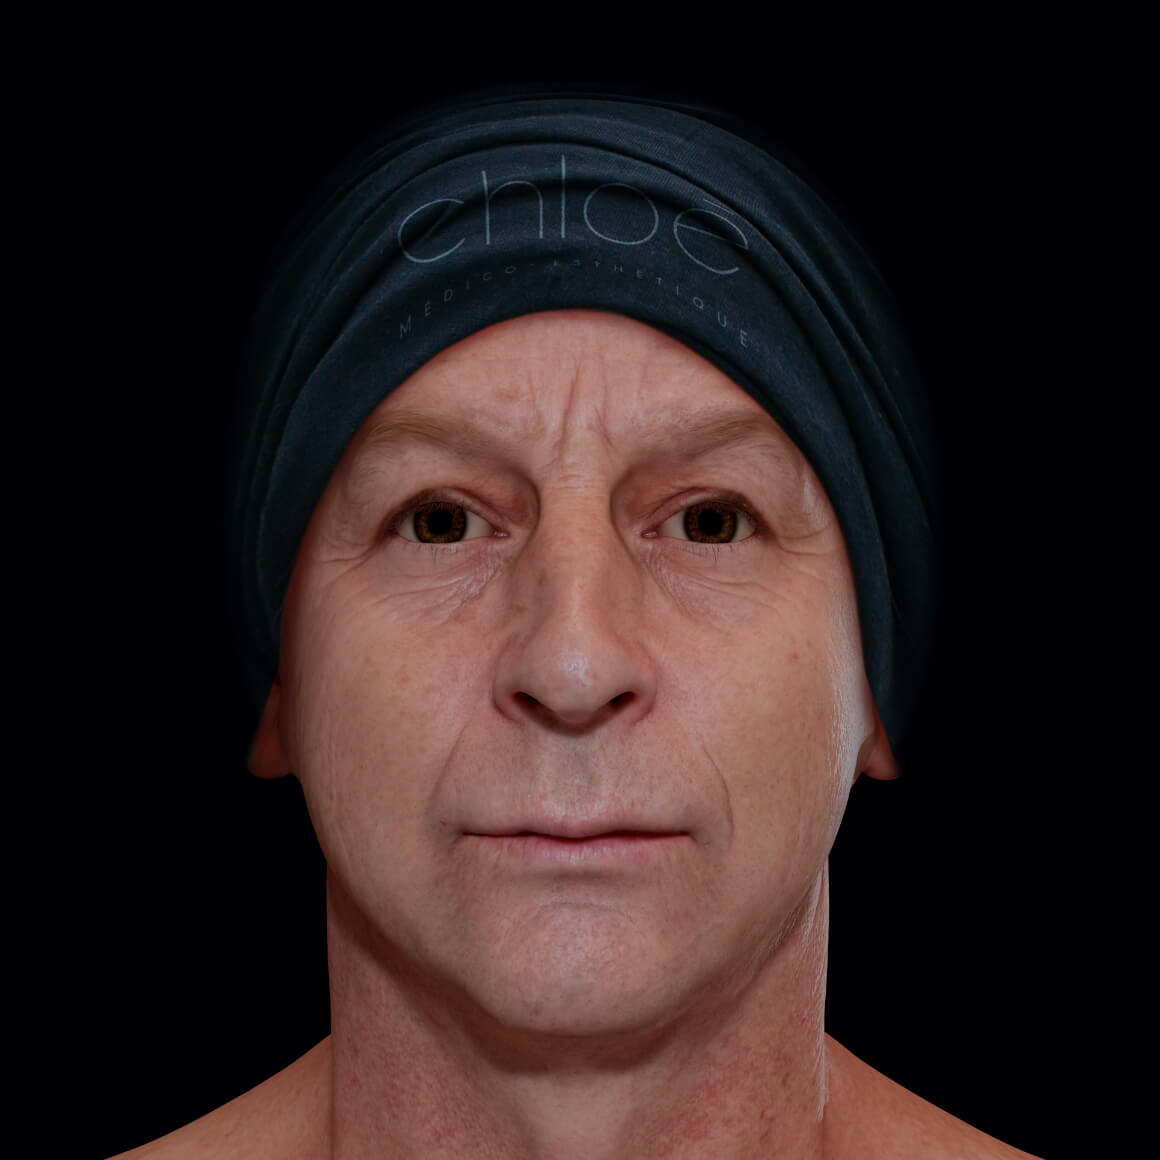 Male patient from Clinique Chloé facing front after fractional laser treatments for facial skin laxity